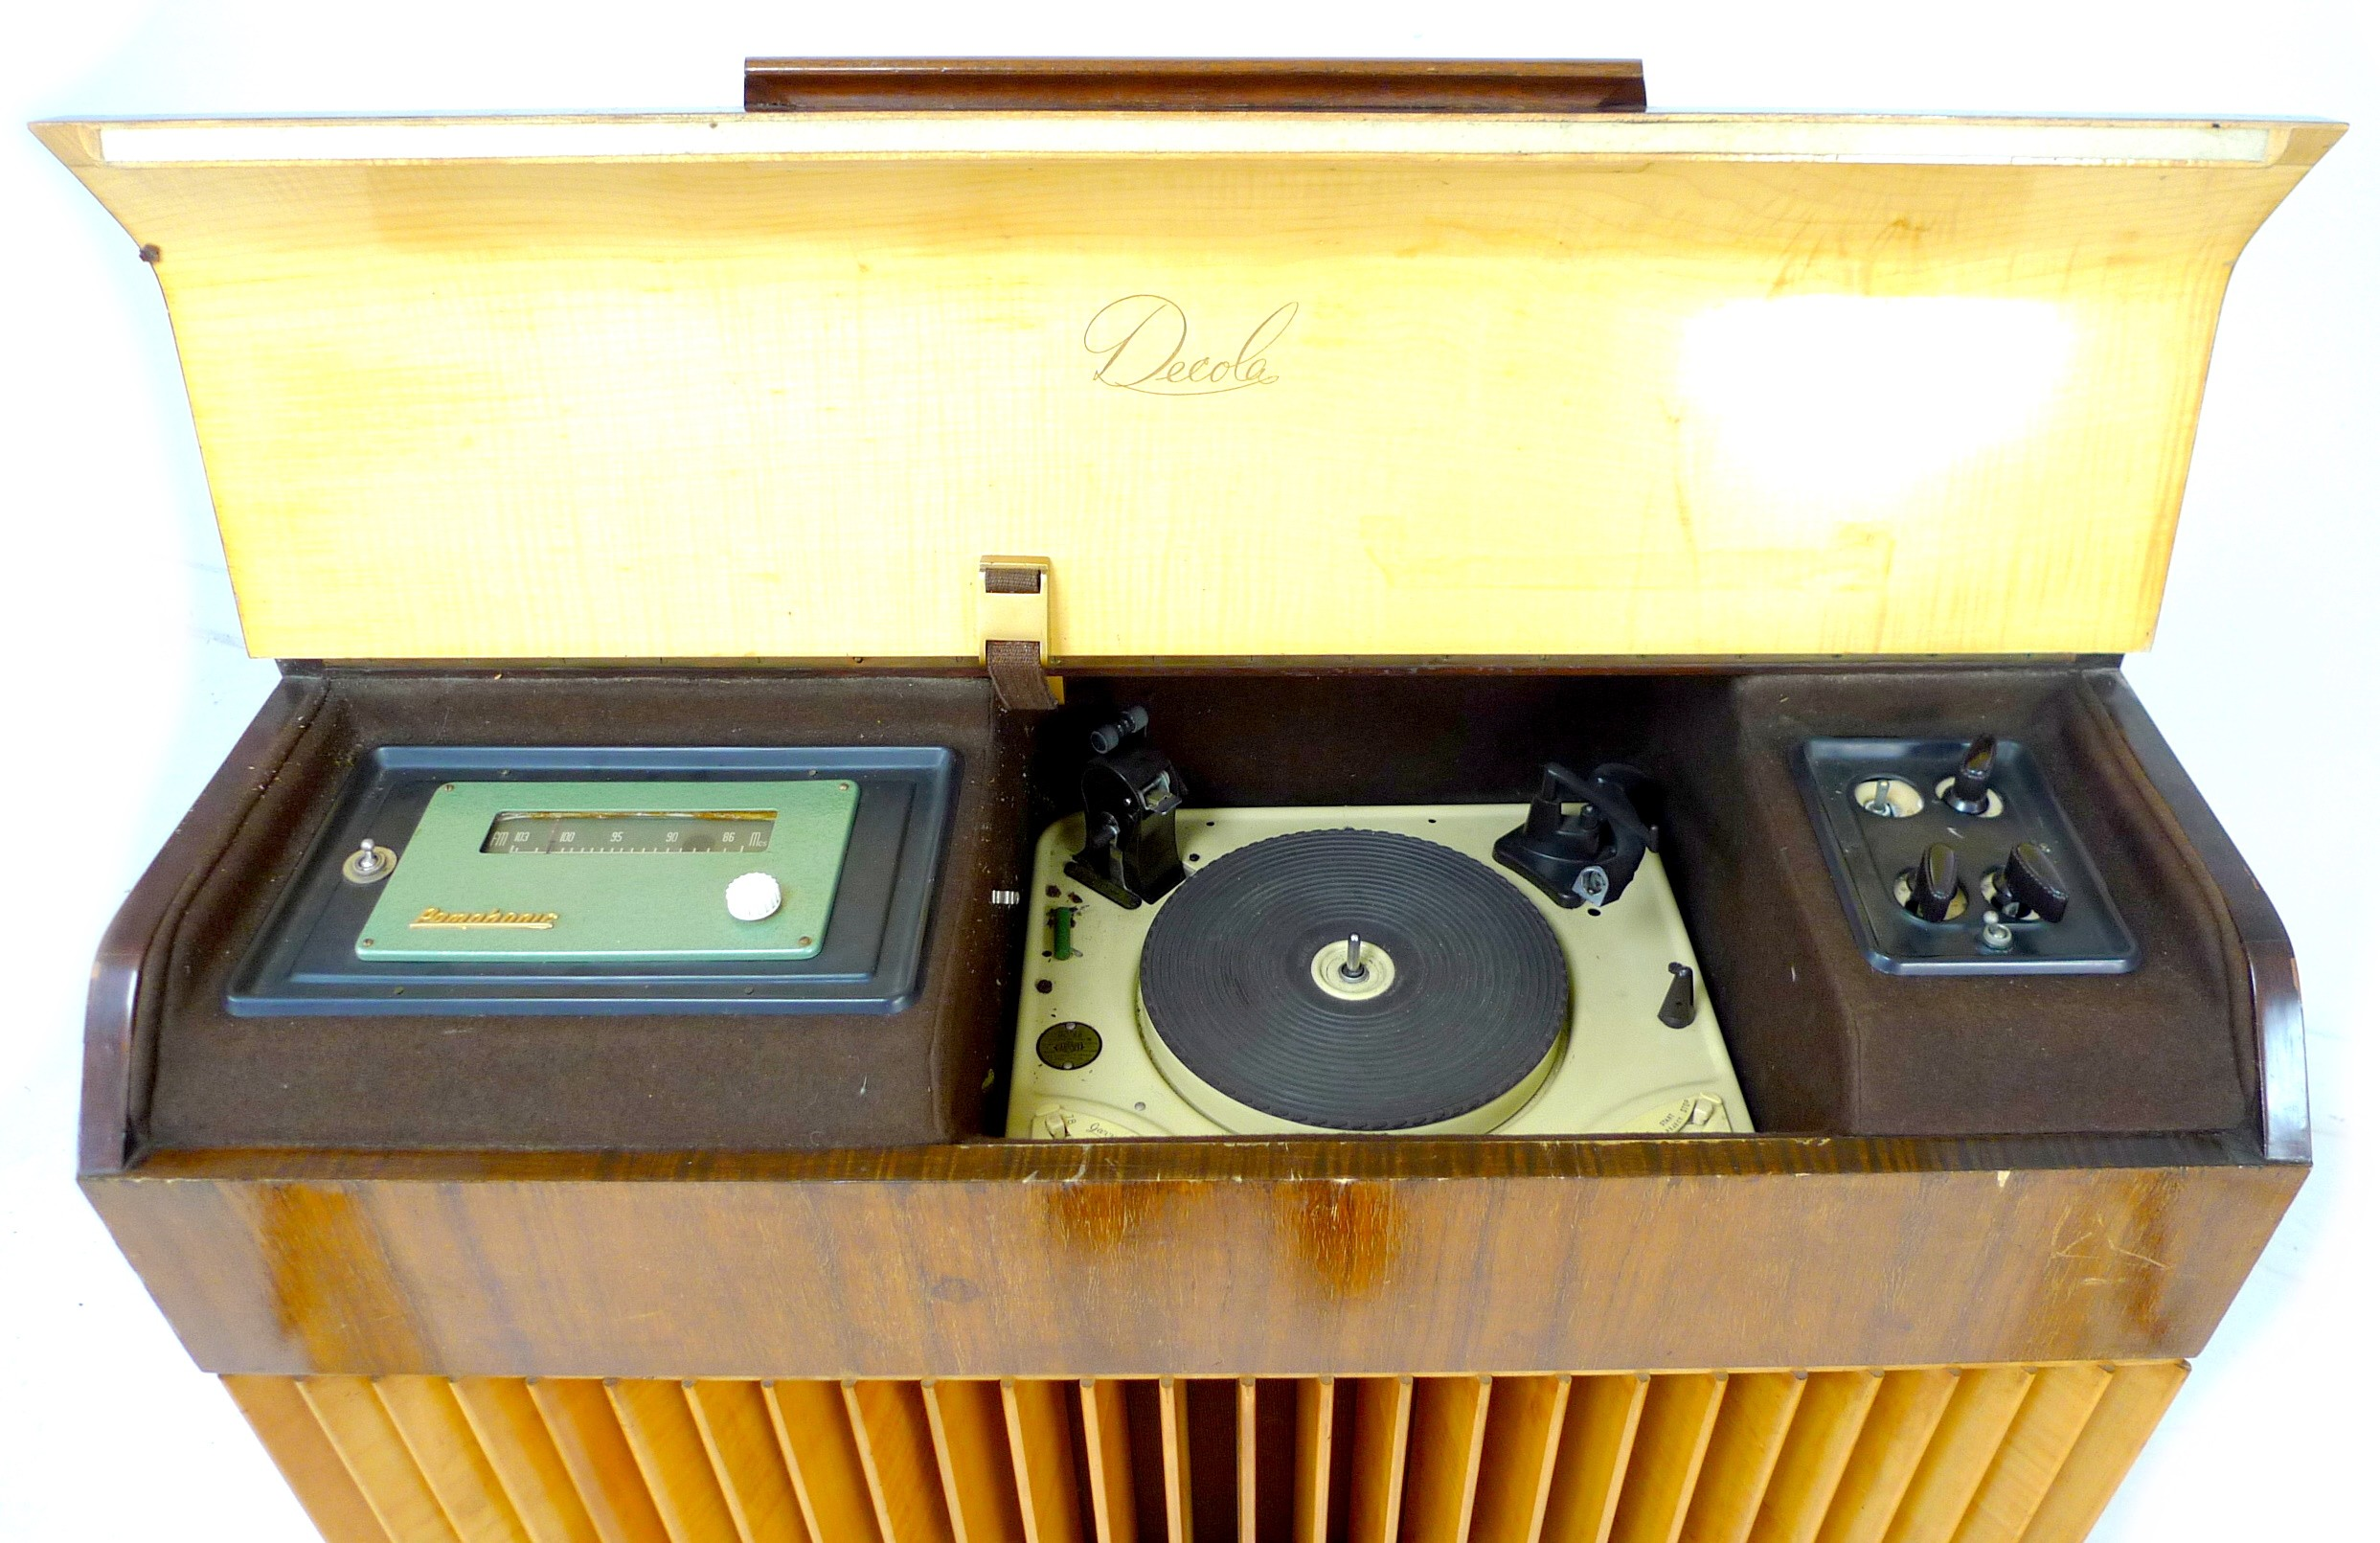 A vintage 'Decola' radiogram, by The Decca Record Company Limited, Rd. Desn. 844055, 'Decola' No. - Image 3 of 9